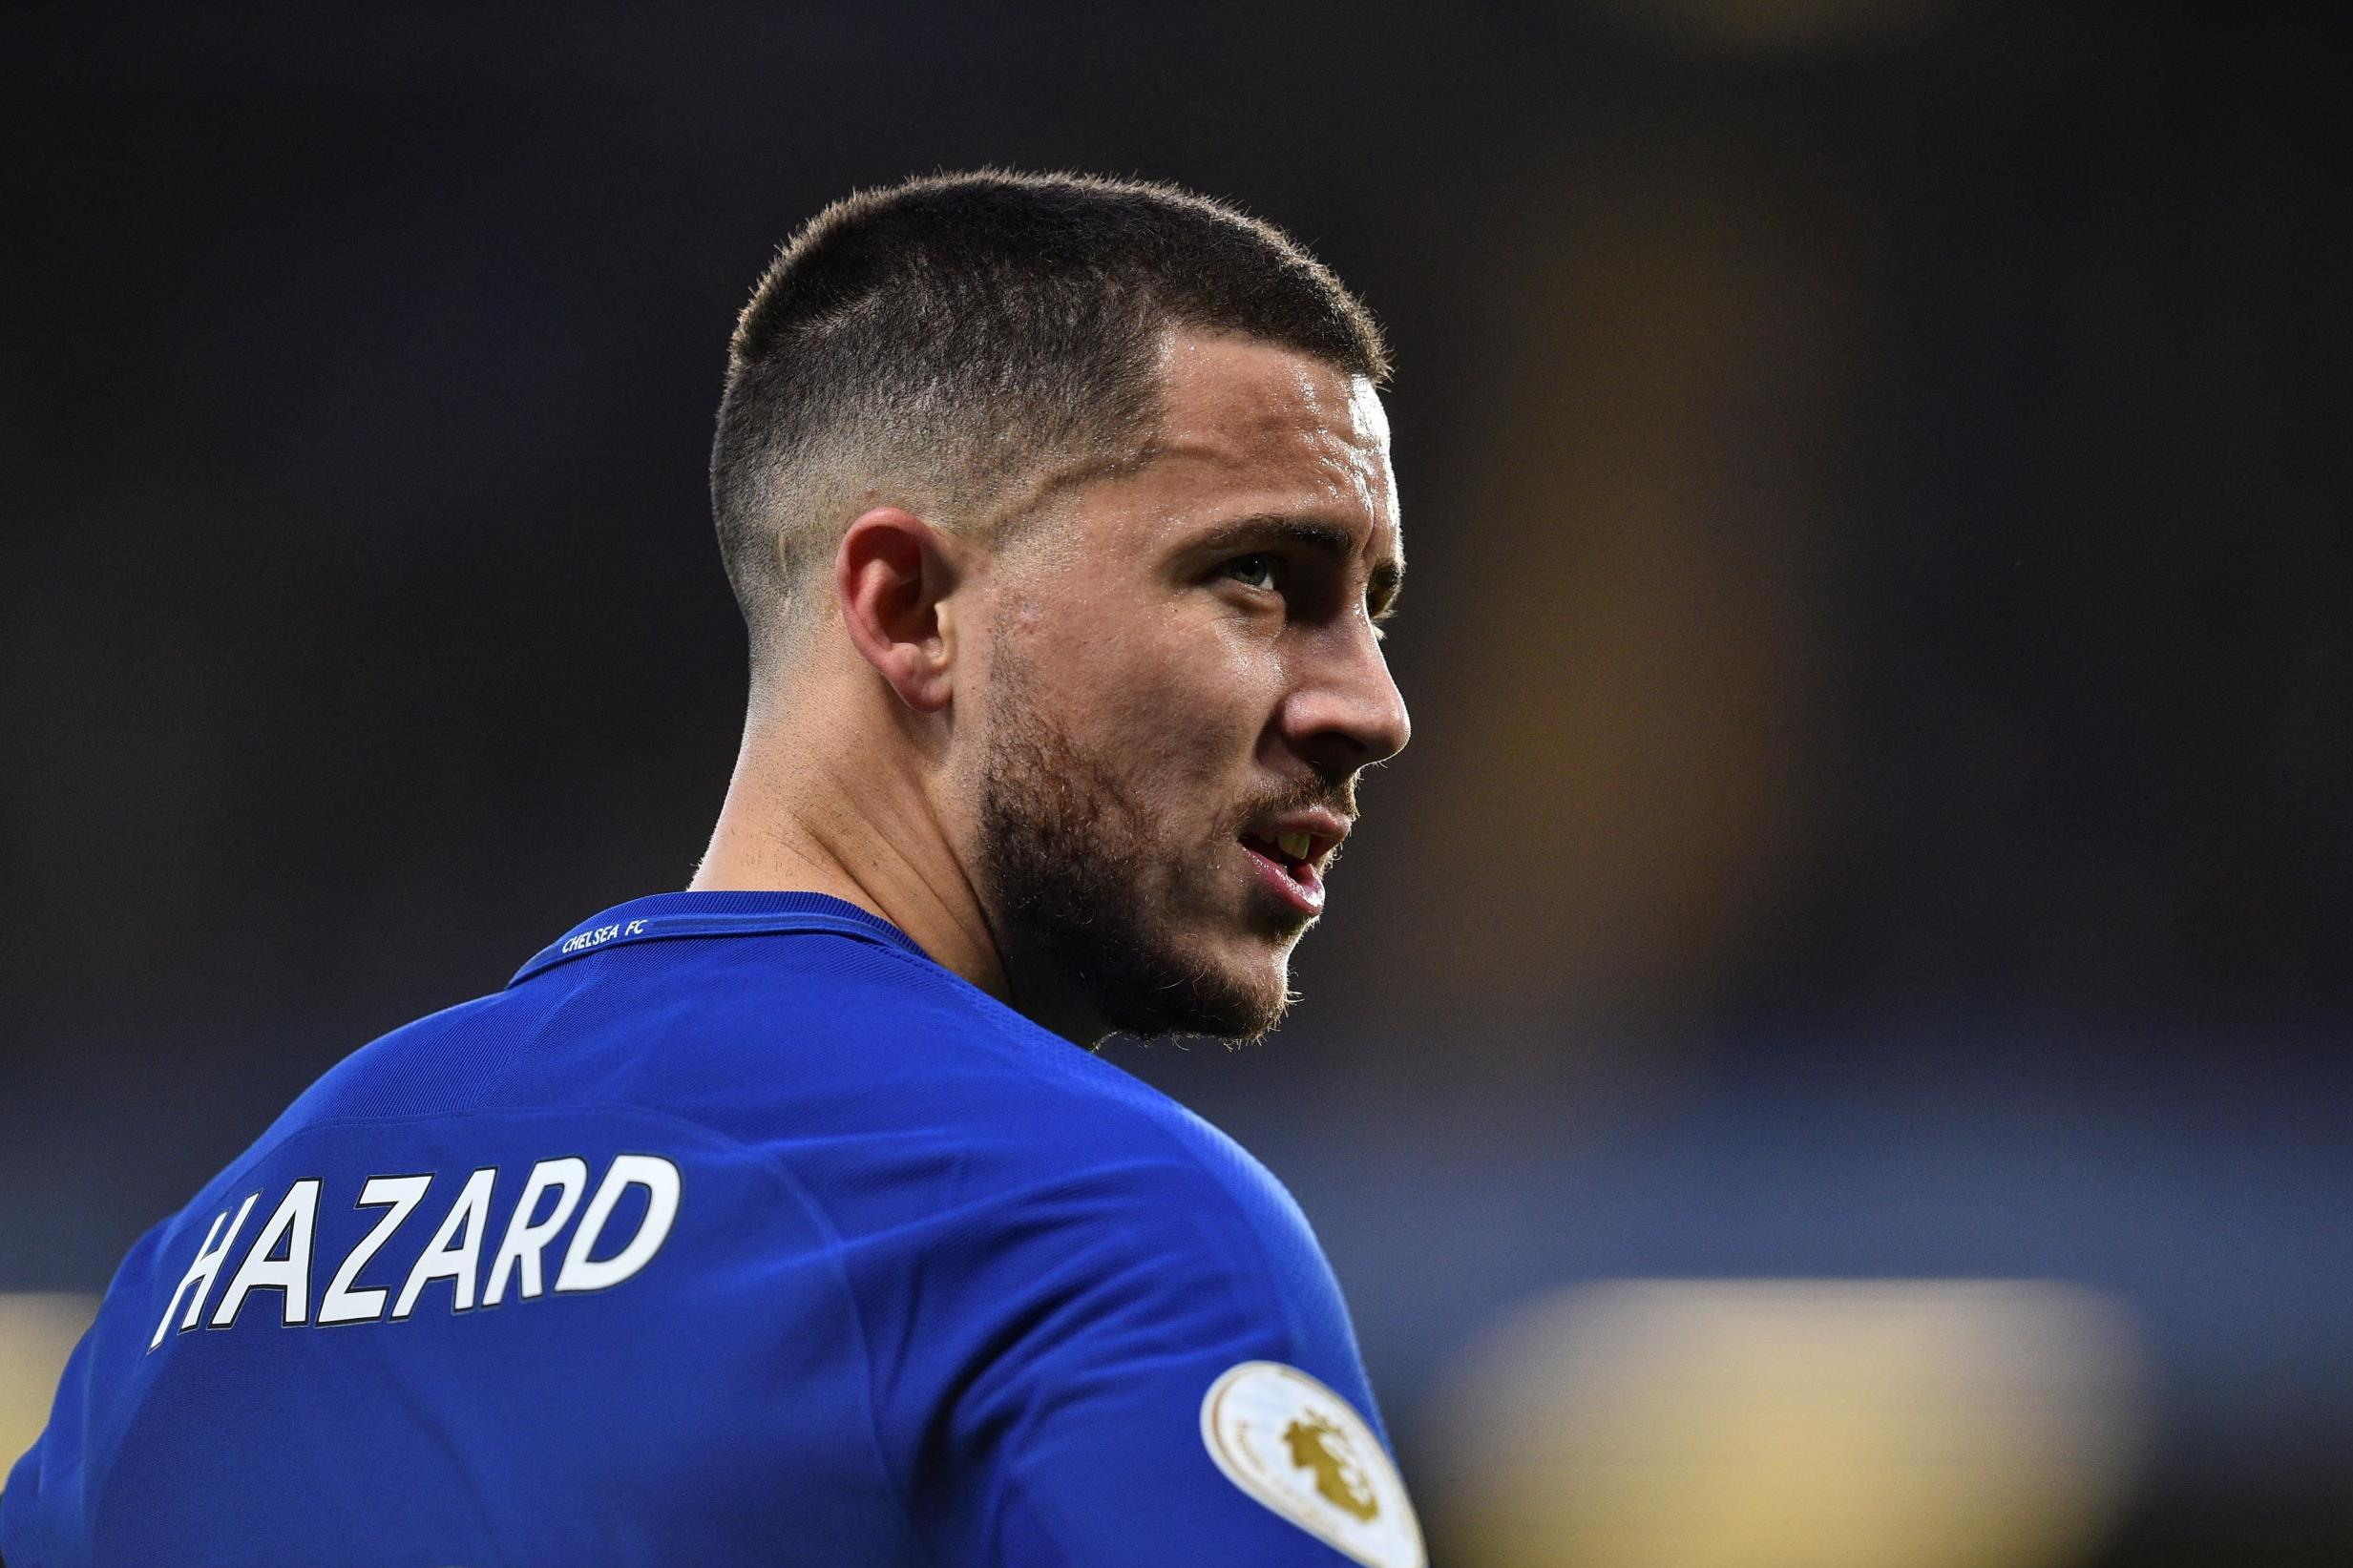 Hd Car Wallpapers For Laptop Free Download Eden Hazard Pictures